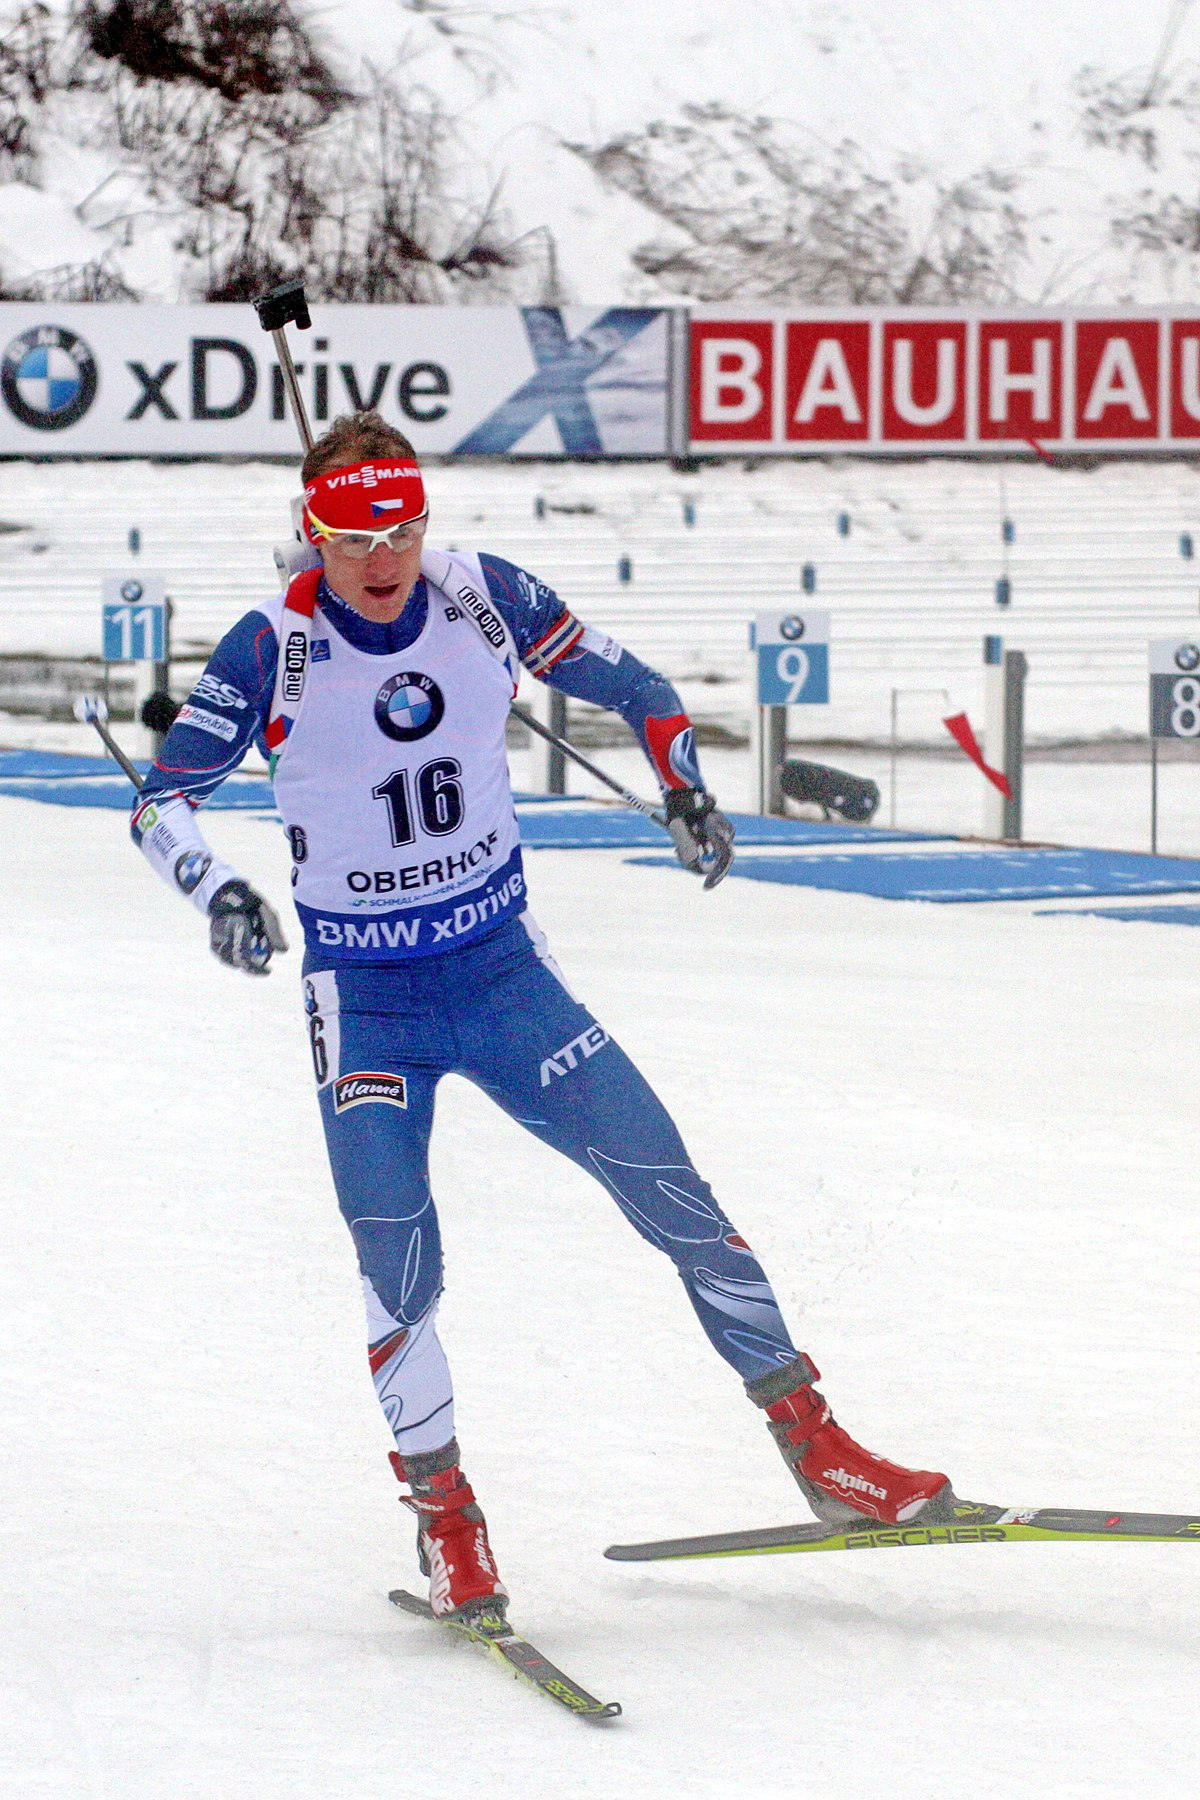 biathlon wm wikipedia